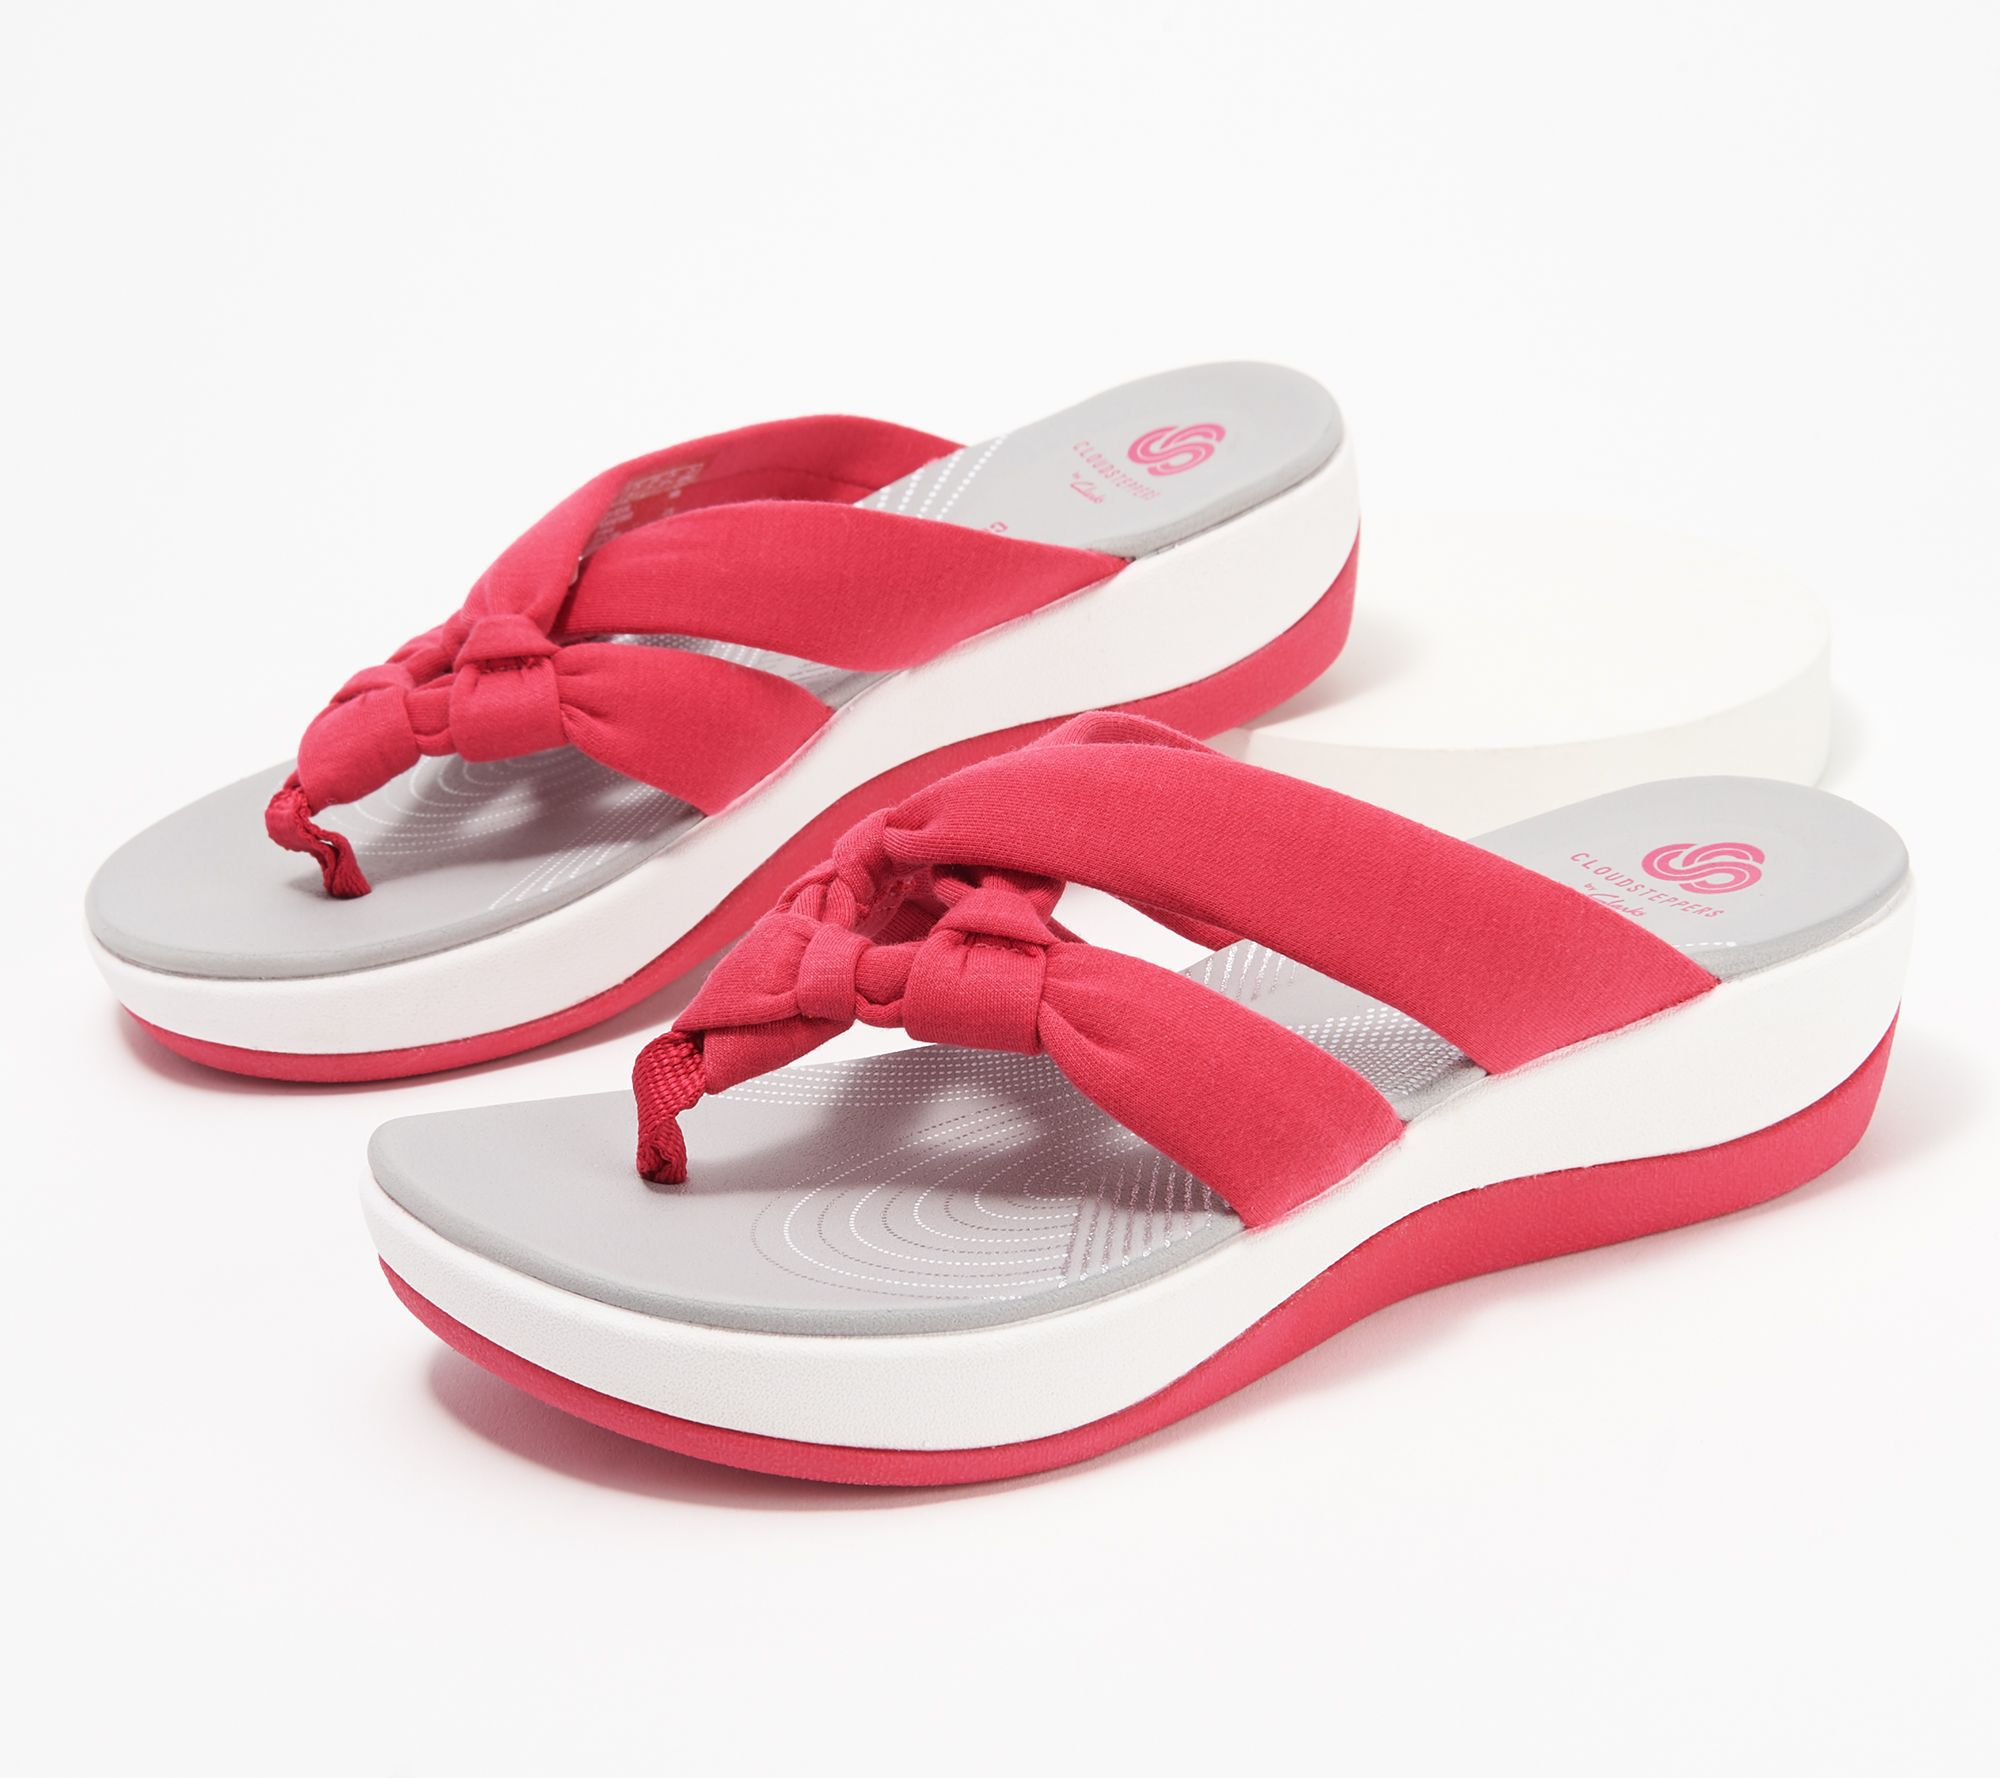 CLOUDSTEPPERS by Clarks Jersey Thong Sandals - Arla Jane - QVC.com